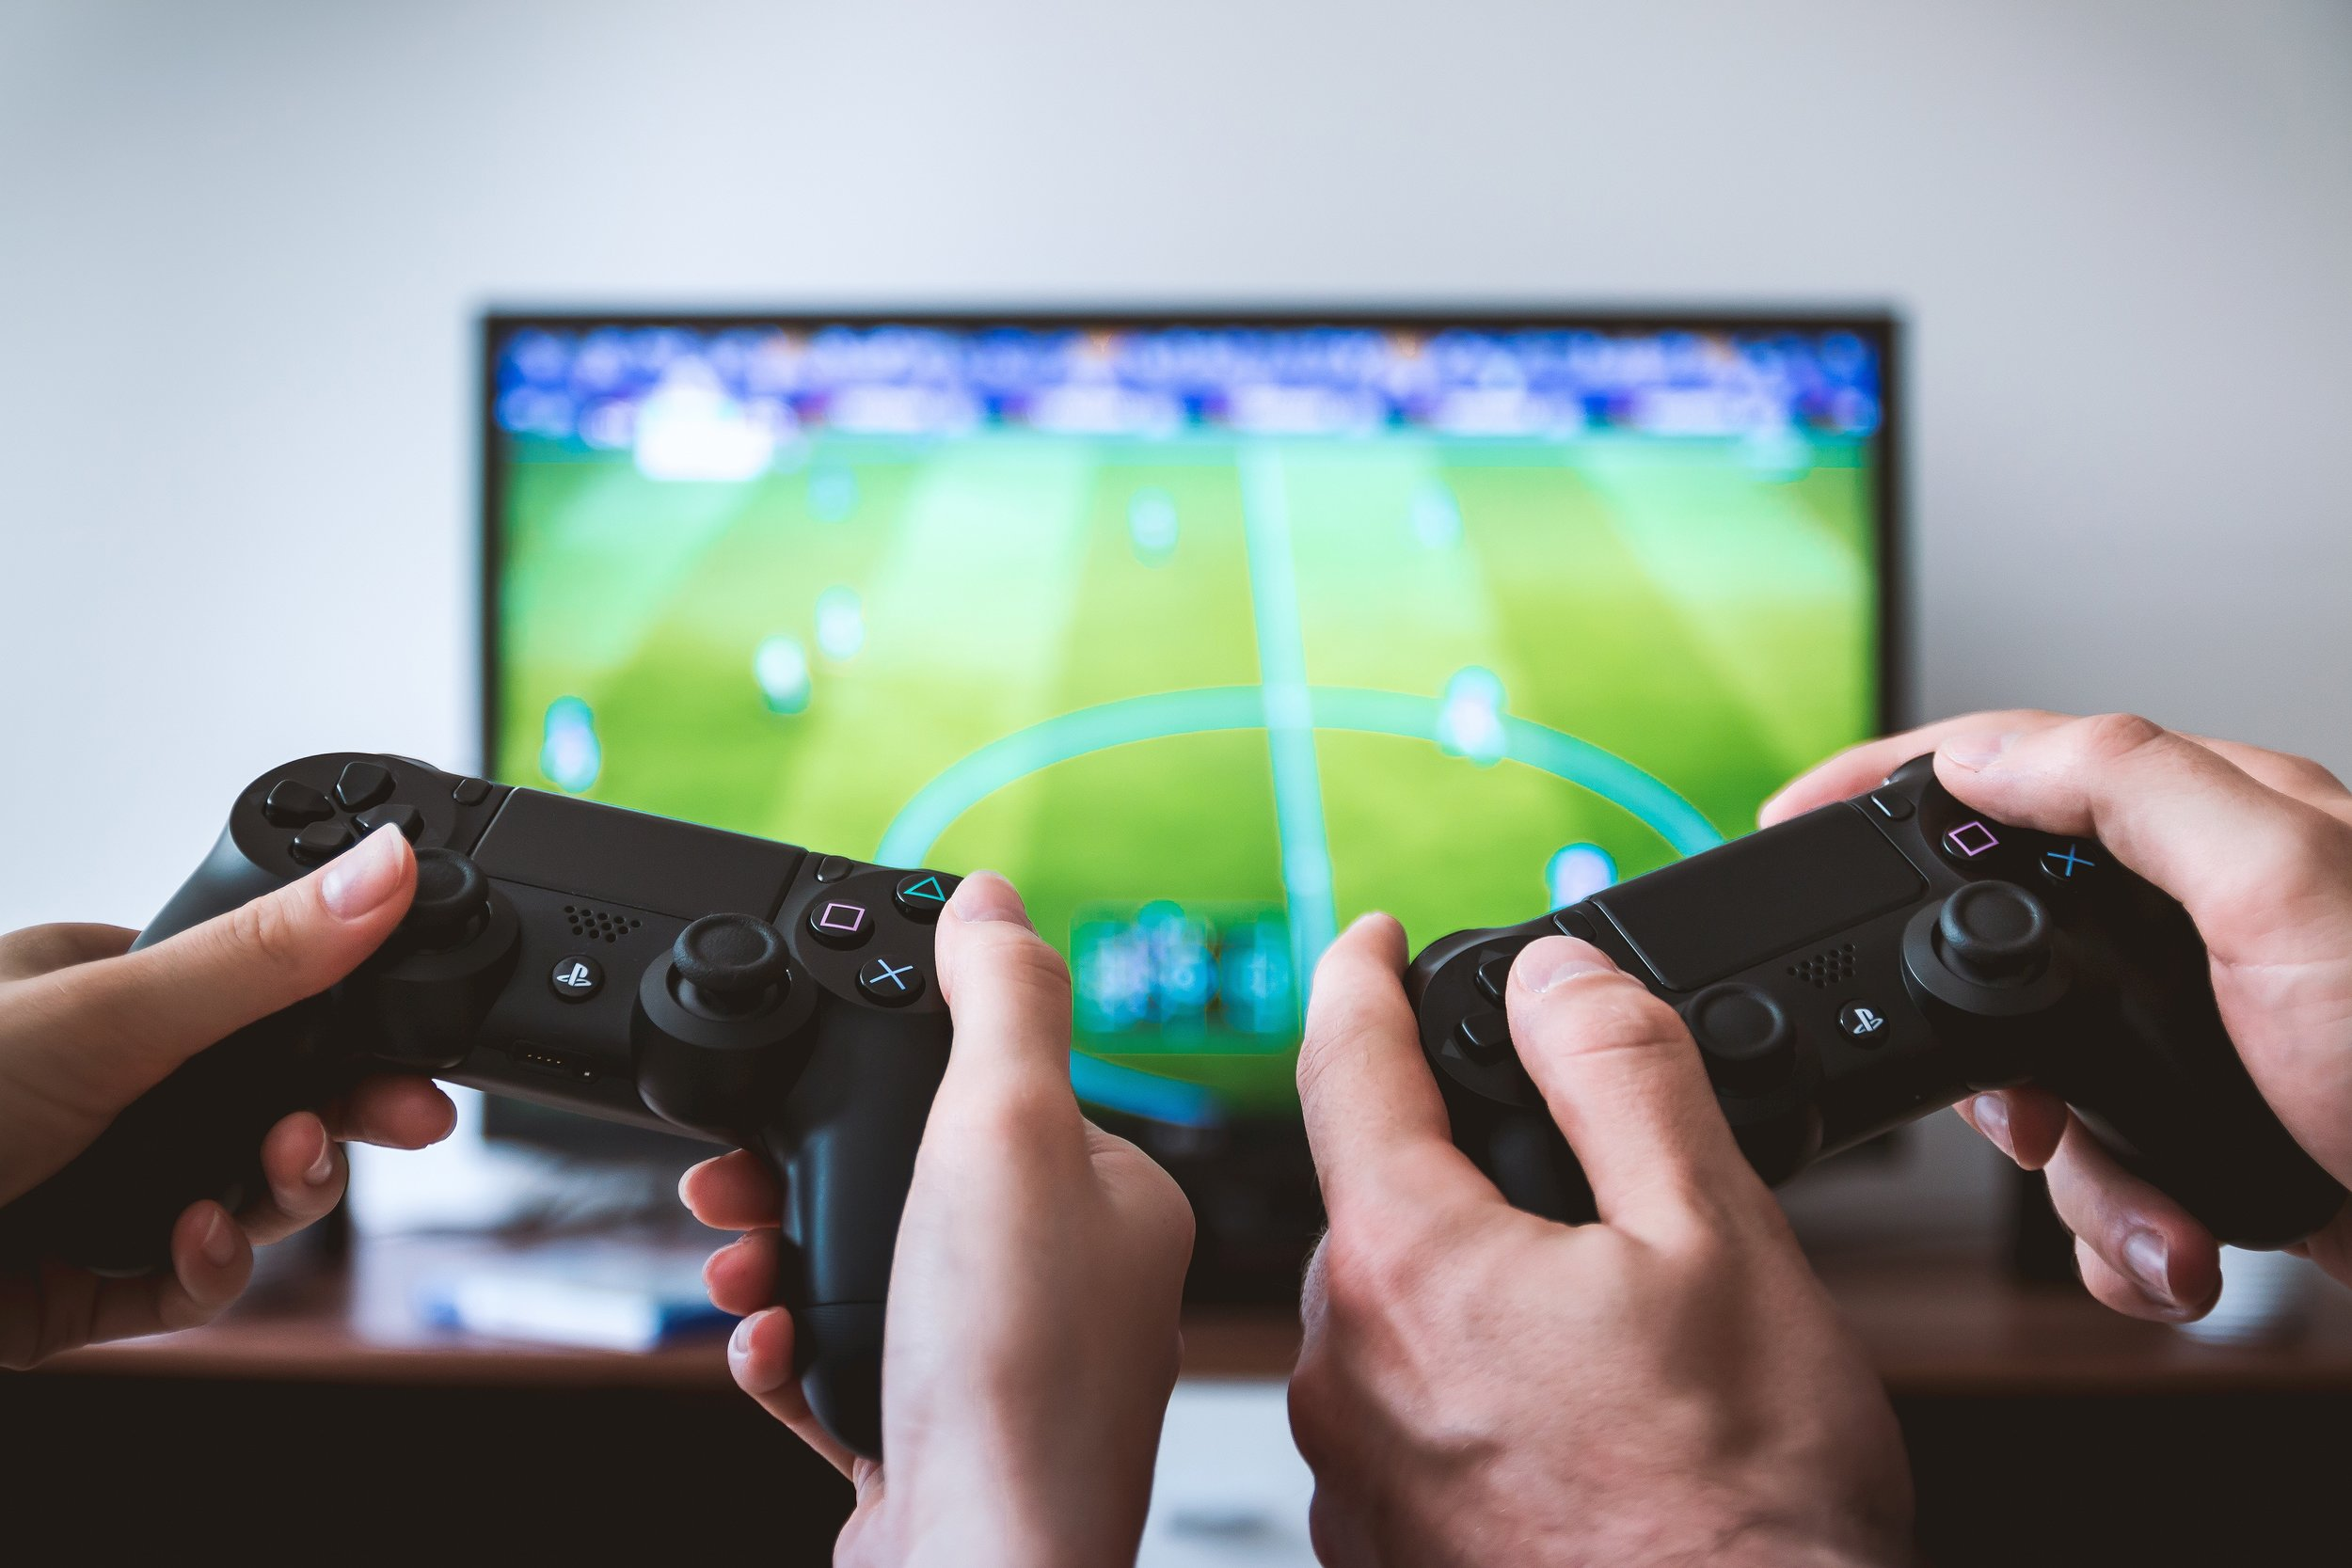 Learning how to play video games is another great way to engage with your host family and the language!